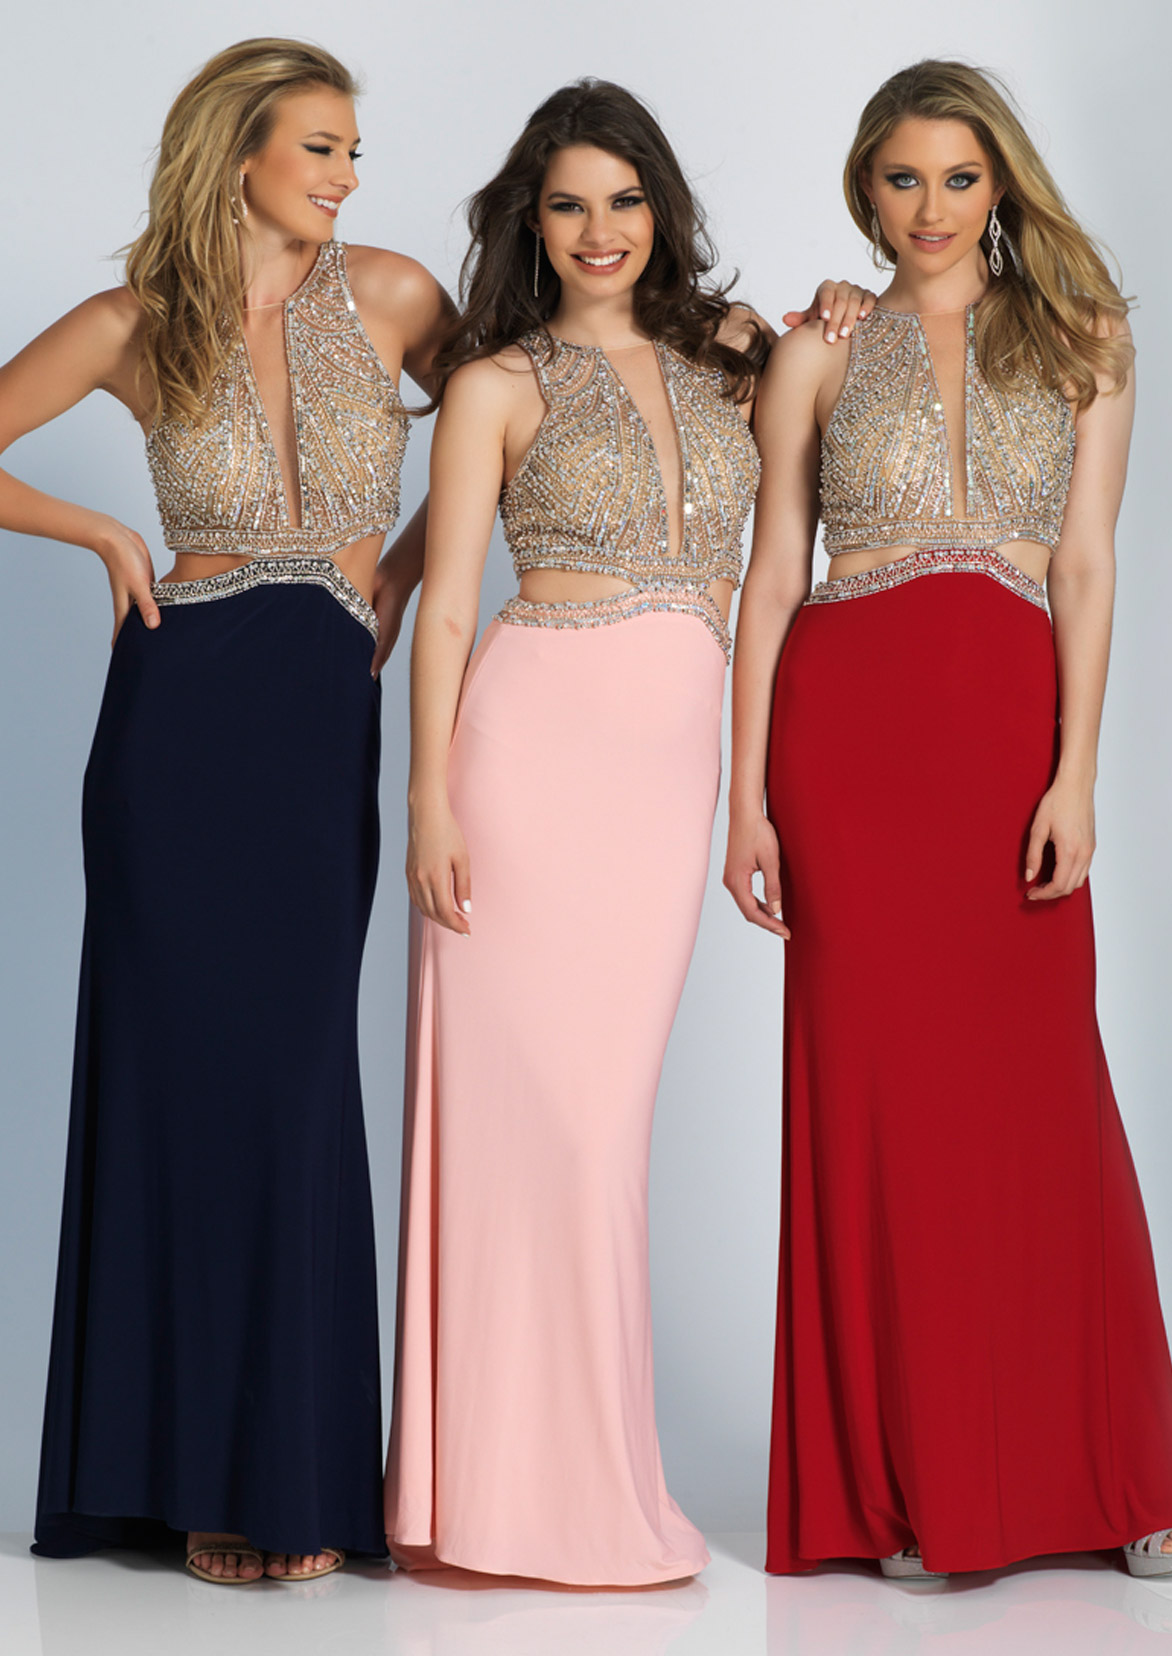 Authorized daveandjohnny retailer 2017 prom dresses authorized daveandjohnny retailer 2017 prom dresses bridesmaid dresses cocktail dresses gowns ombrellifo Choice Image